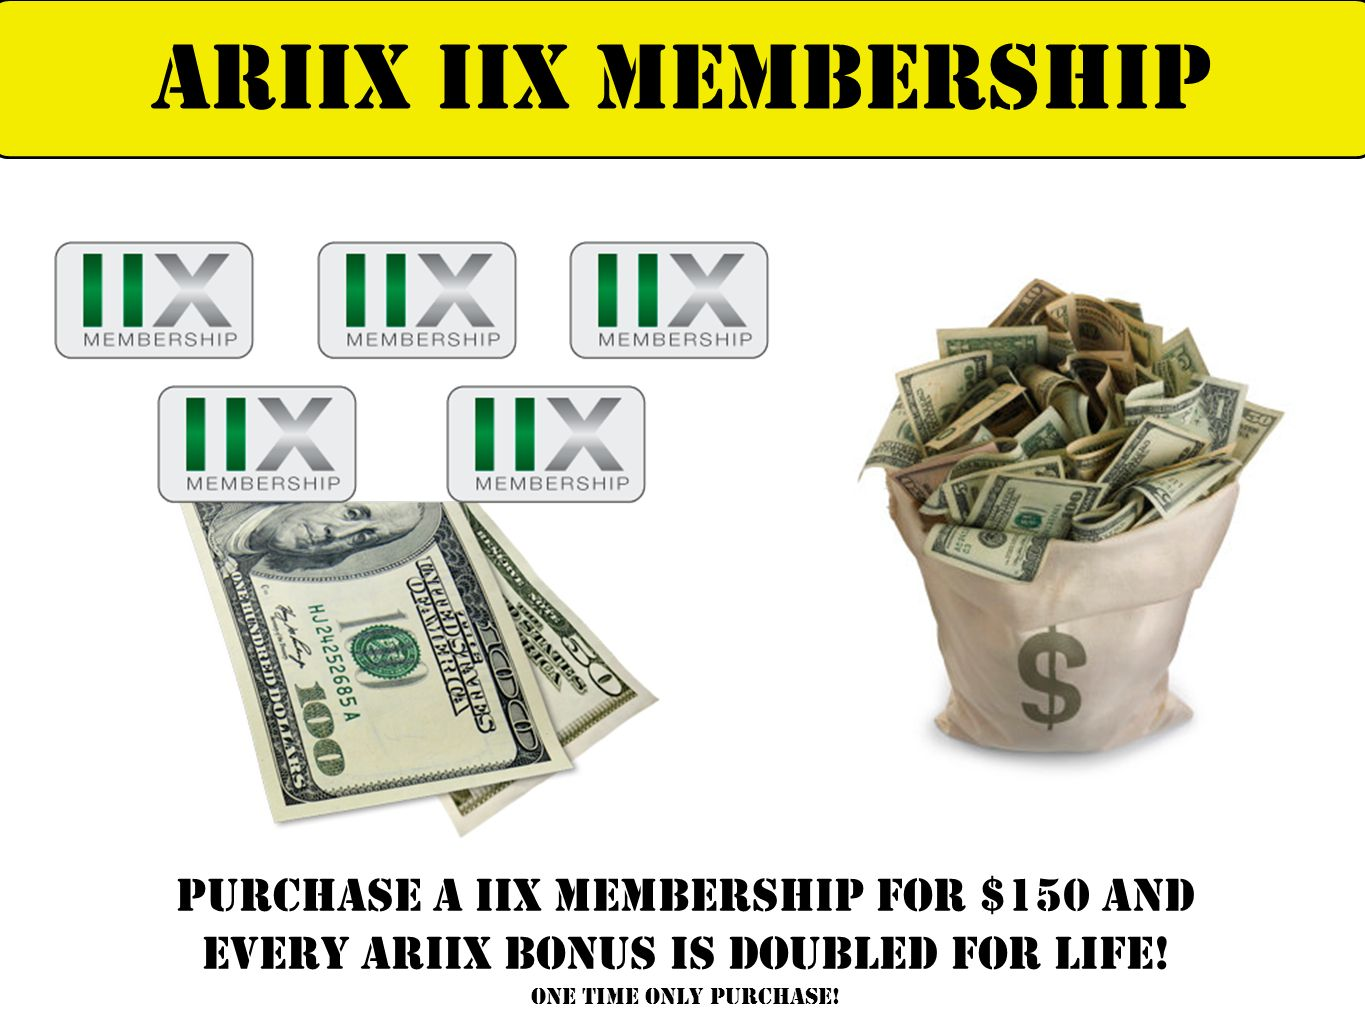 Purchase a iix membership for $150 And every ariix bonus is doubled for life! one time only purchase! ARIIX IIX MEMBERSHIP